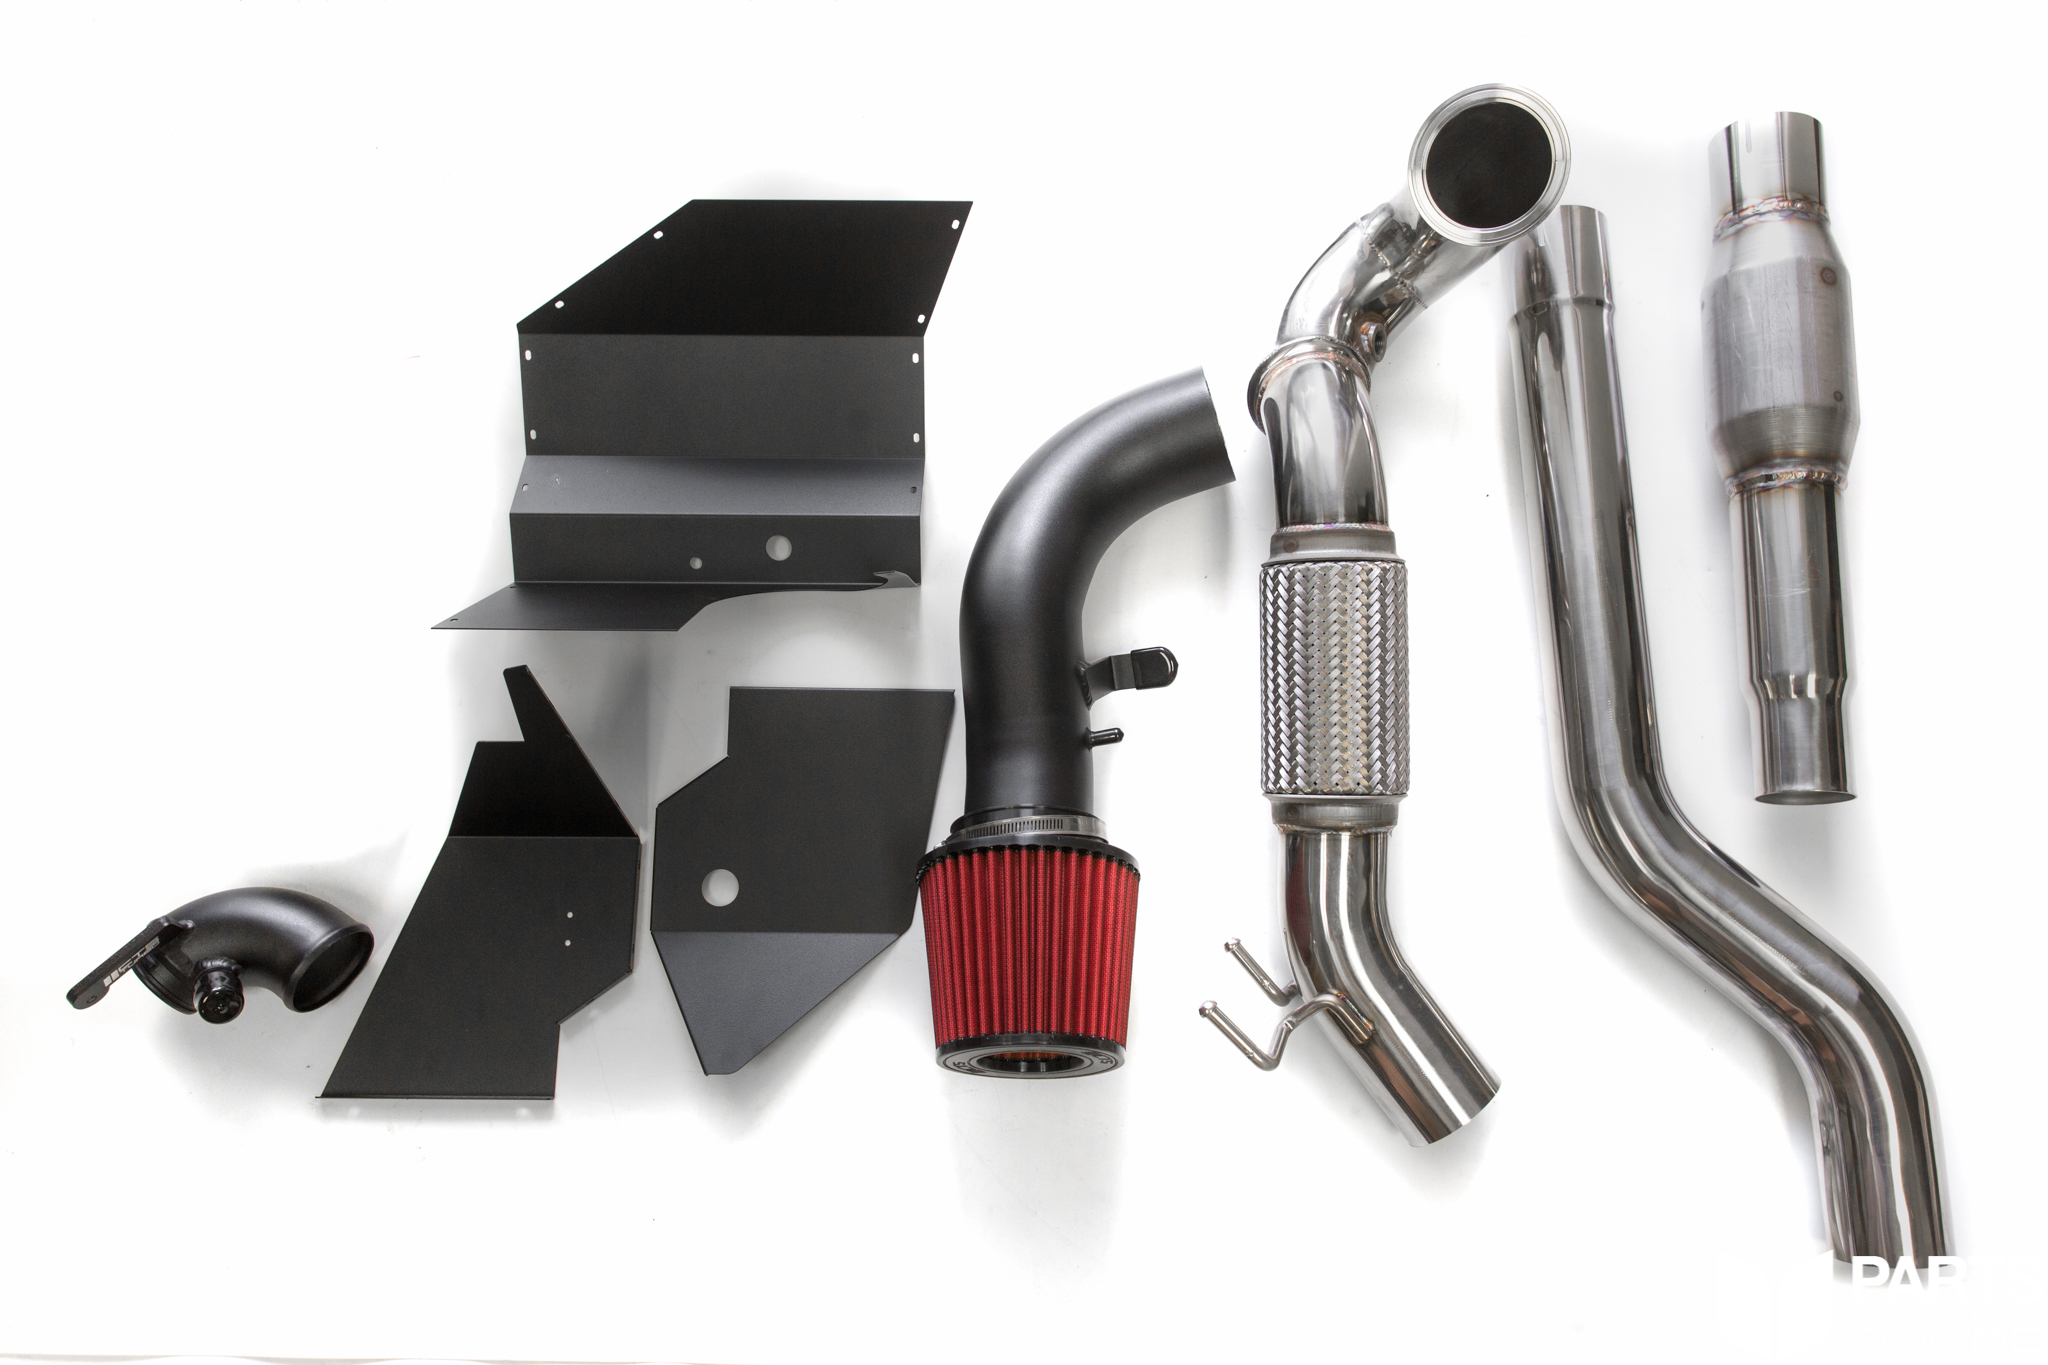 8v, 8va3, 8vs3, arizona, Audi, audi az, audi s3 cts downpipe, audi s3 cts turbo, audi s3 downpipe, audi s3 dsg, audi s3 dsg tune, audi s3 ecu tune, audi s3 exhaust, audi s3 giac, audi s3 intake, audi s3 mods, audi s3 mods az, audi s3 stage 1, audi s3 stage 2, audi s3 stage 2 upgrade, audi s3 stage 3, audi s3 tune, audi s3 turbo upgrade, audi turbo upgrade, audi upgrades az, audia3, audigramm, audis3, awd, az, az audi mods, az vw mods, cts intercooler, dsg, ecu, giac stage 1, giac stage 2, giac tune, giac tuning, hawk brakes, hawk pads, launch control, mod, mods, performance mods az, s3 apr stage 2, s3 apr tune, s3 cts intercooler, s3 giac, s3 giac stage 2, s3 giac tune, s3 inlet pipe, s3 intercooler, s3 intercooler upgrade, s3 mesh grill, s3 modifications, s3 rs3 grill, s3 spr stage 1, s3 turbo inlet pipe, s3 upgrades